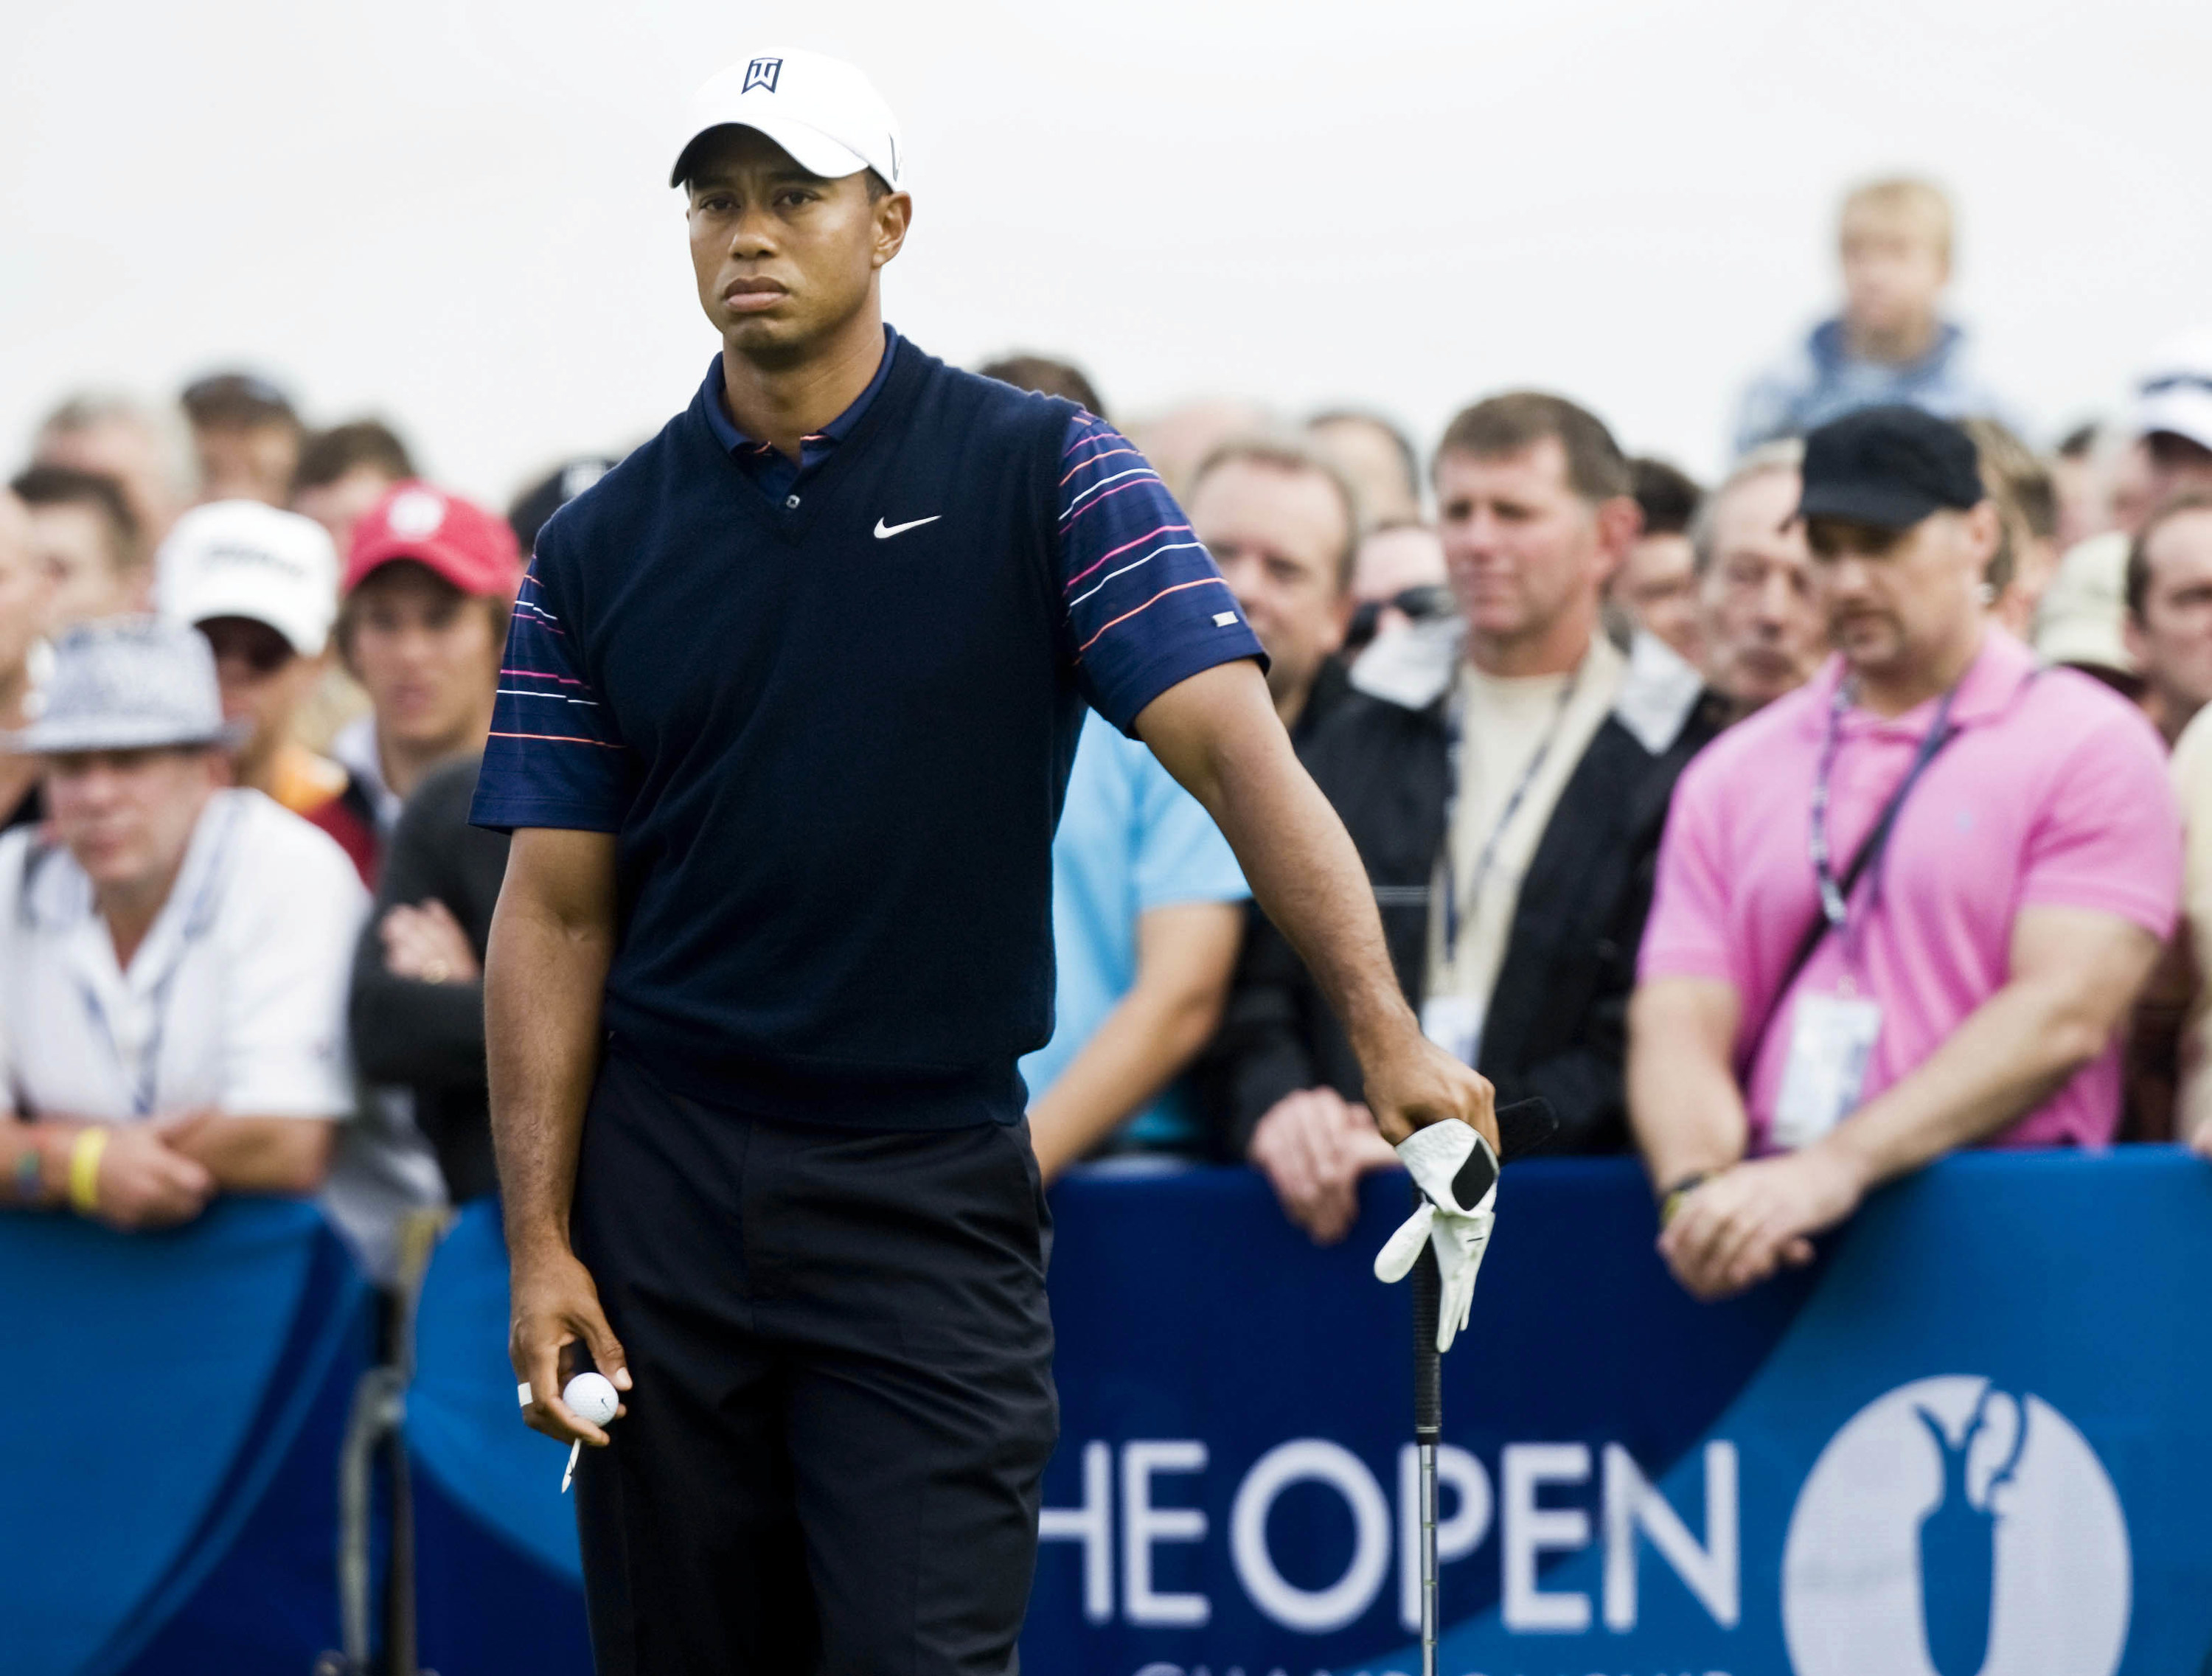 Tiger Woods playing golf as people watch